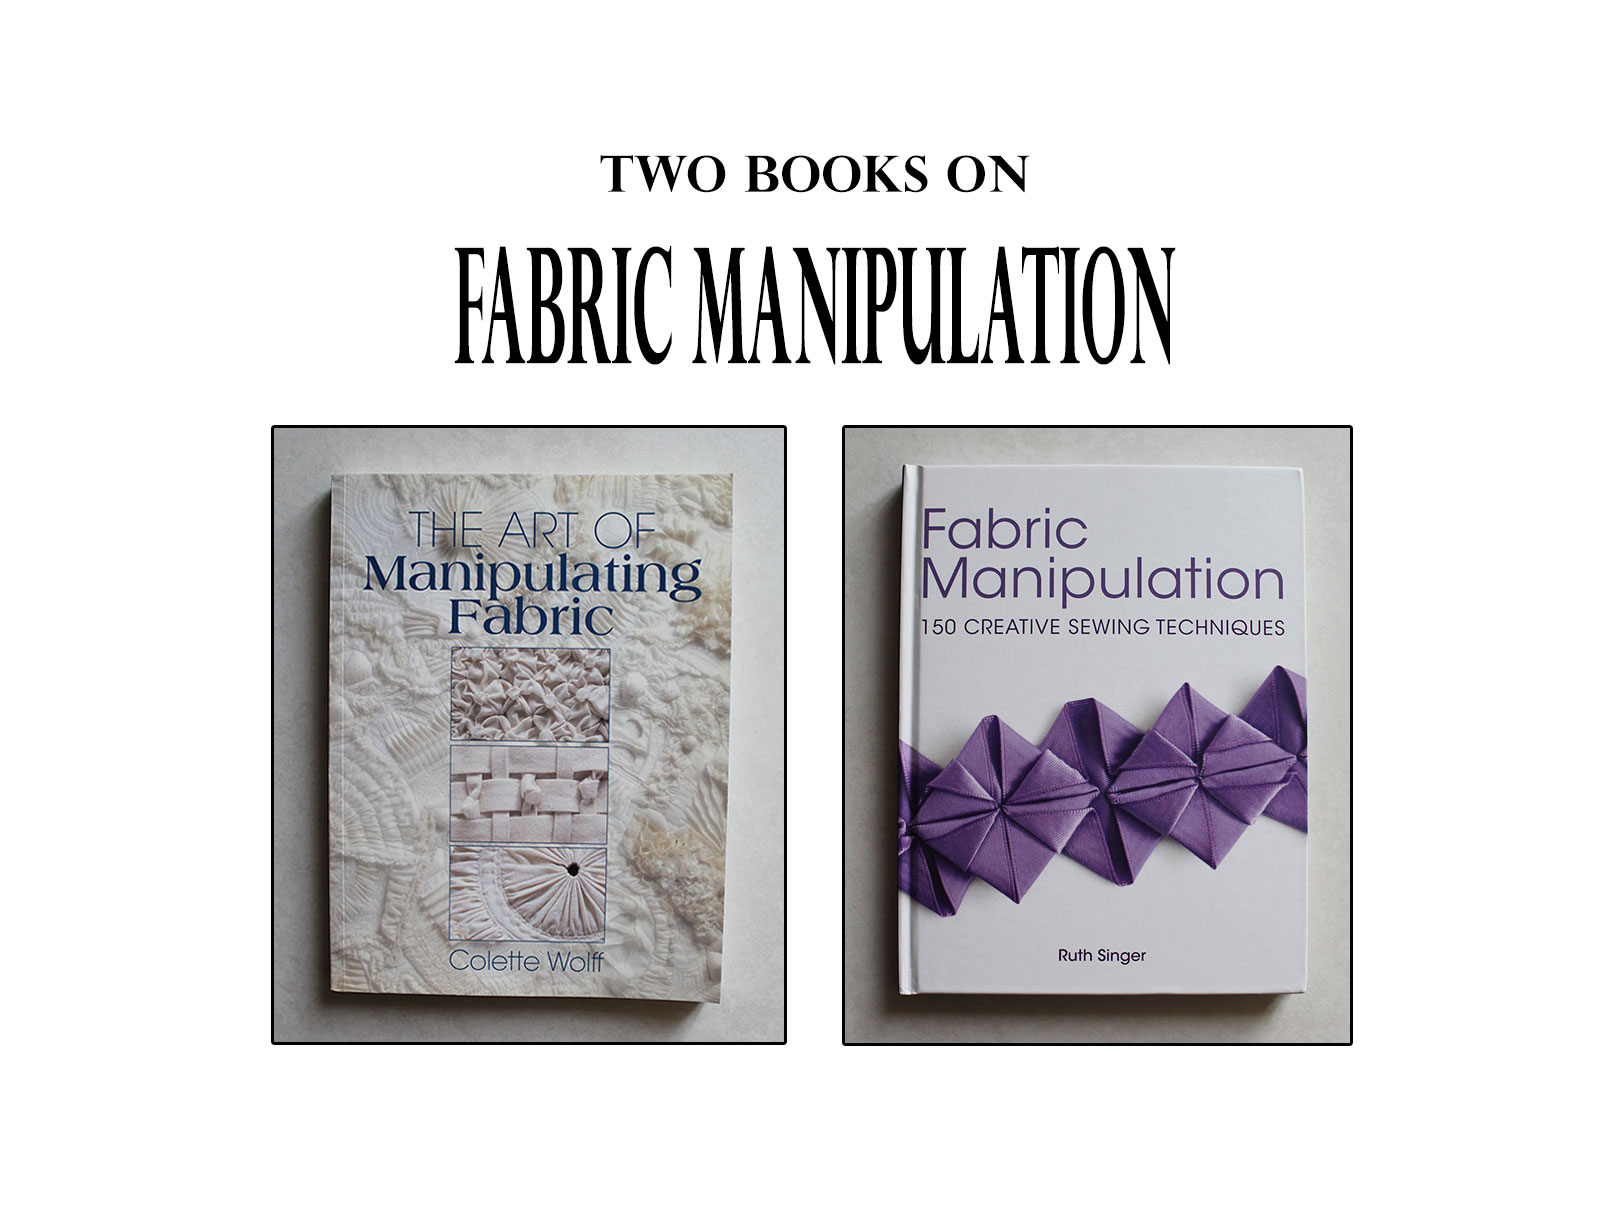 Fabric Manipulation Books To Have The Shapes Of Fabric